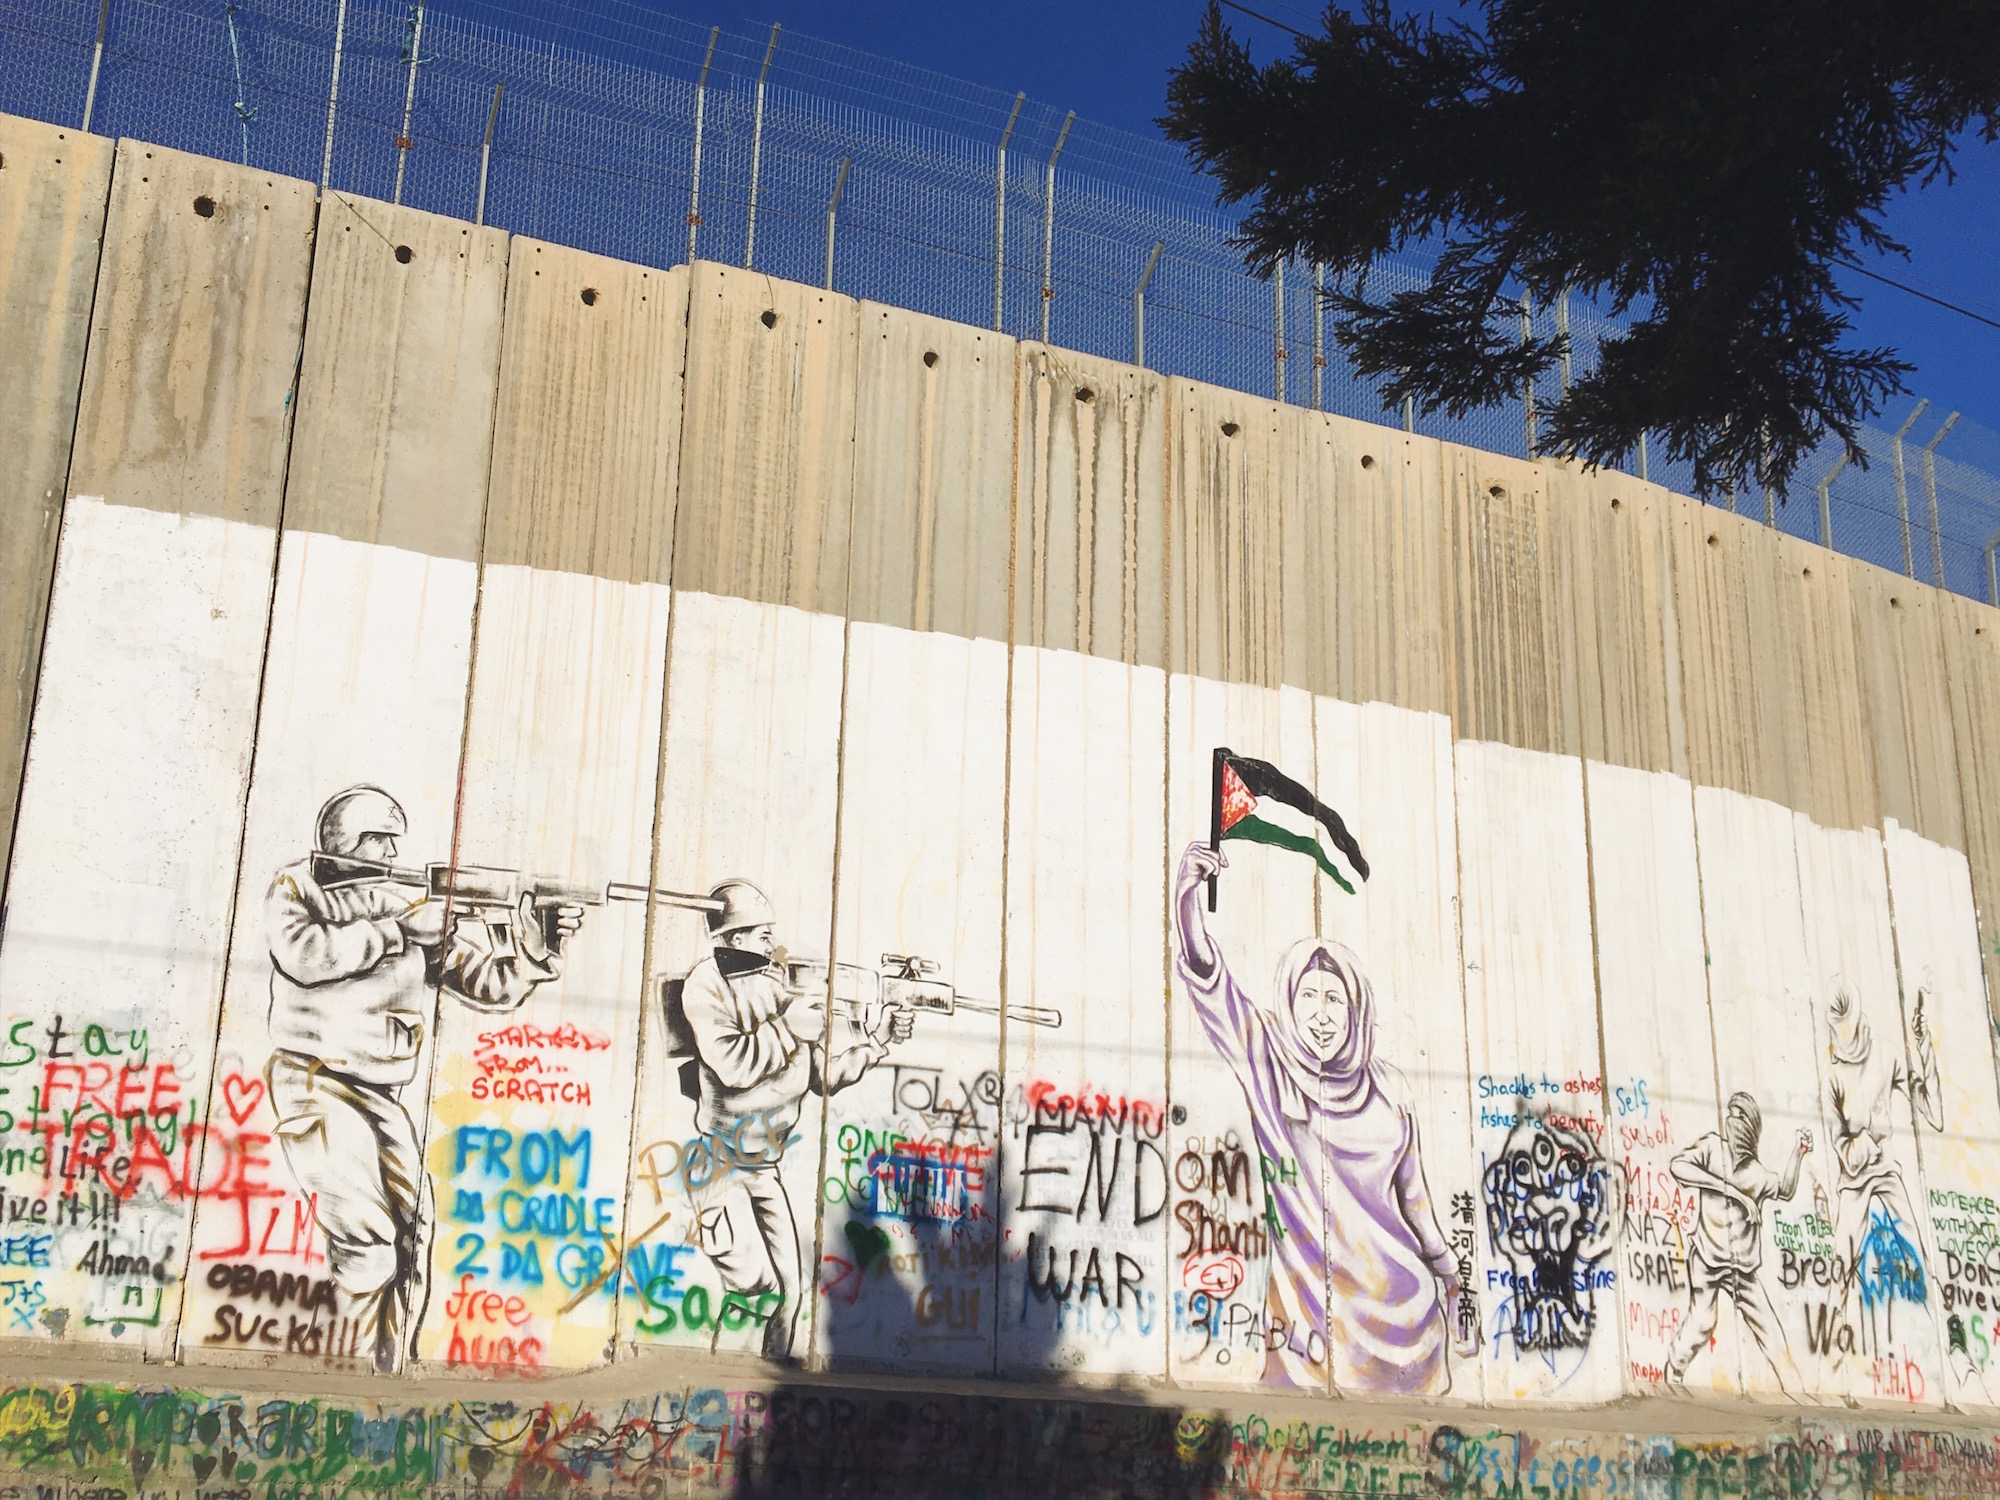 Make coffee, not war - Muro di Betlemme tra Palestina e Israele